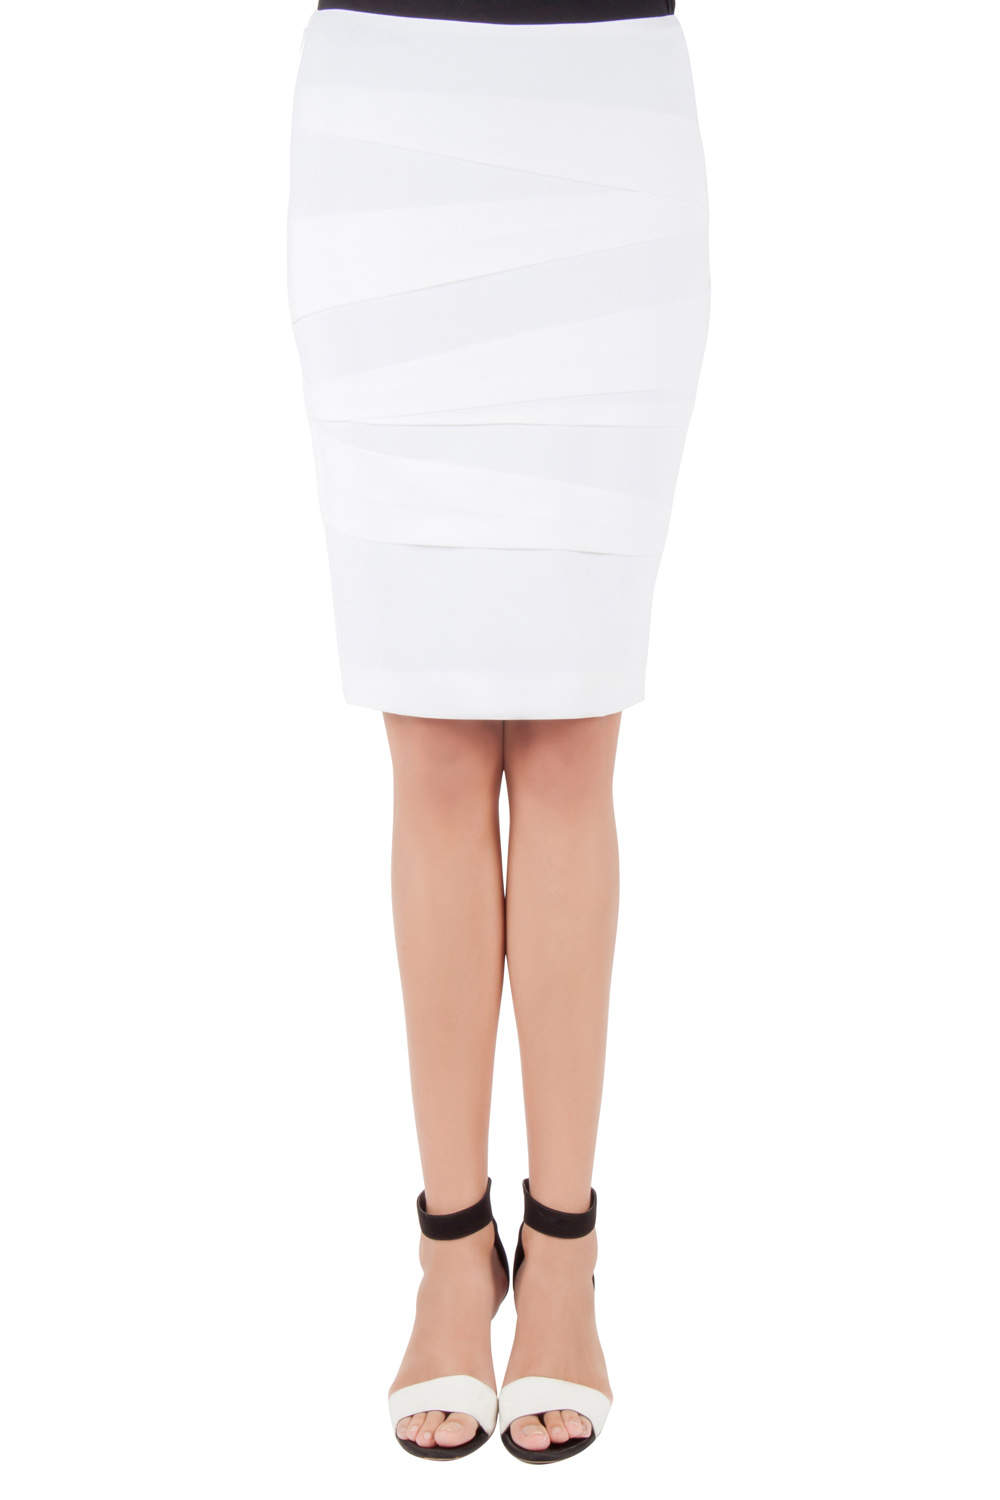 Versace Off White Crepe Stretch Asymmetric Panel Tiered Pencil Skirt M